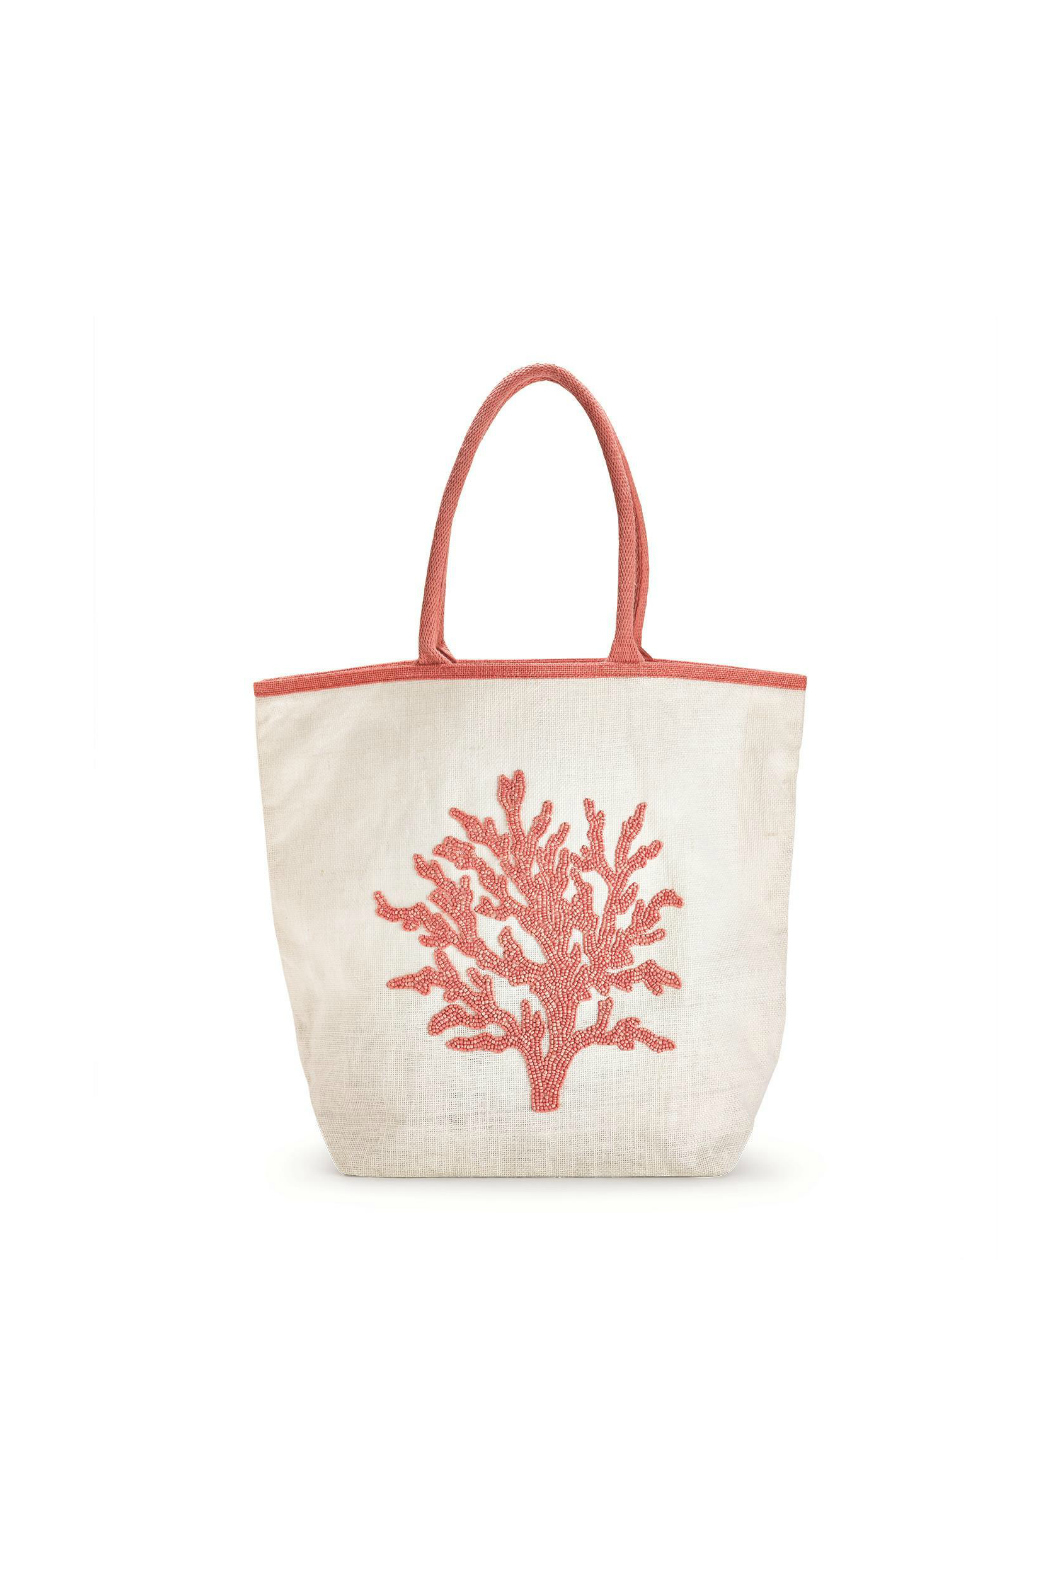 Two's Company CORAL REEF BEADED TOTE BAG - Front Cropped Image